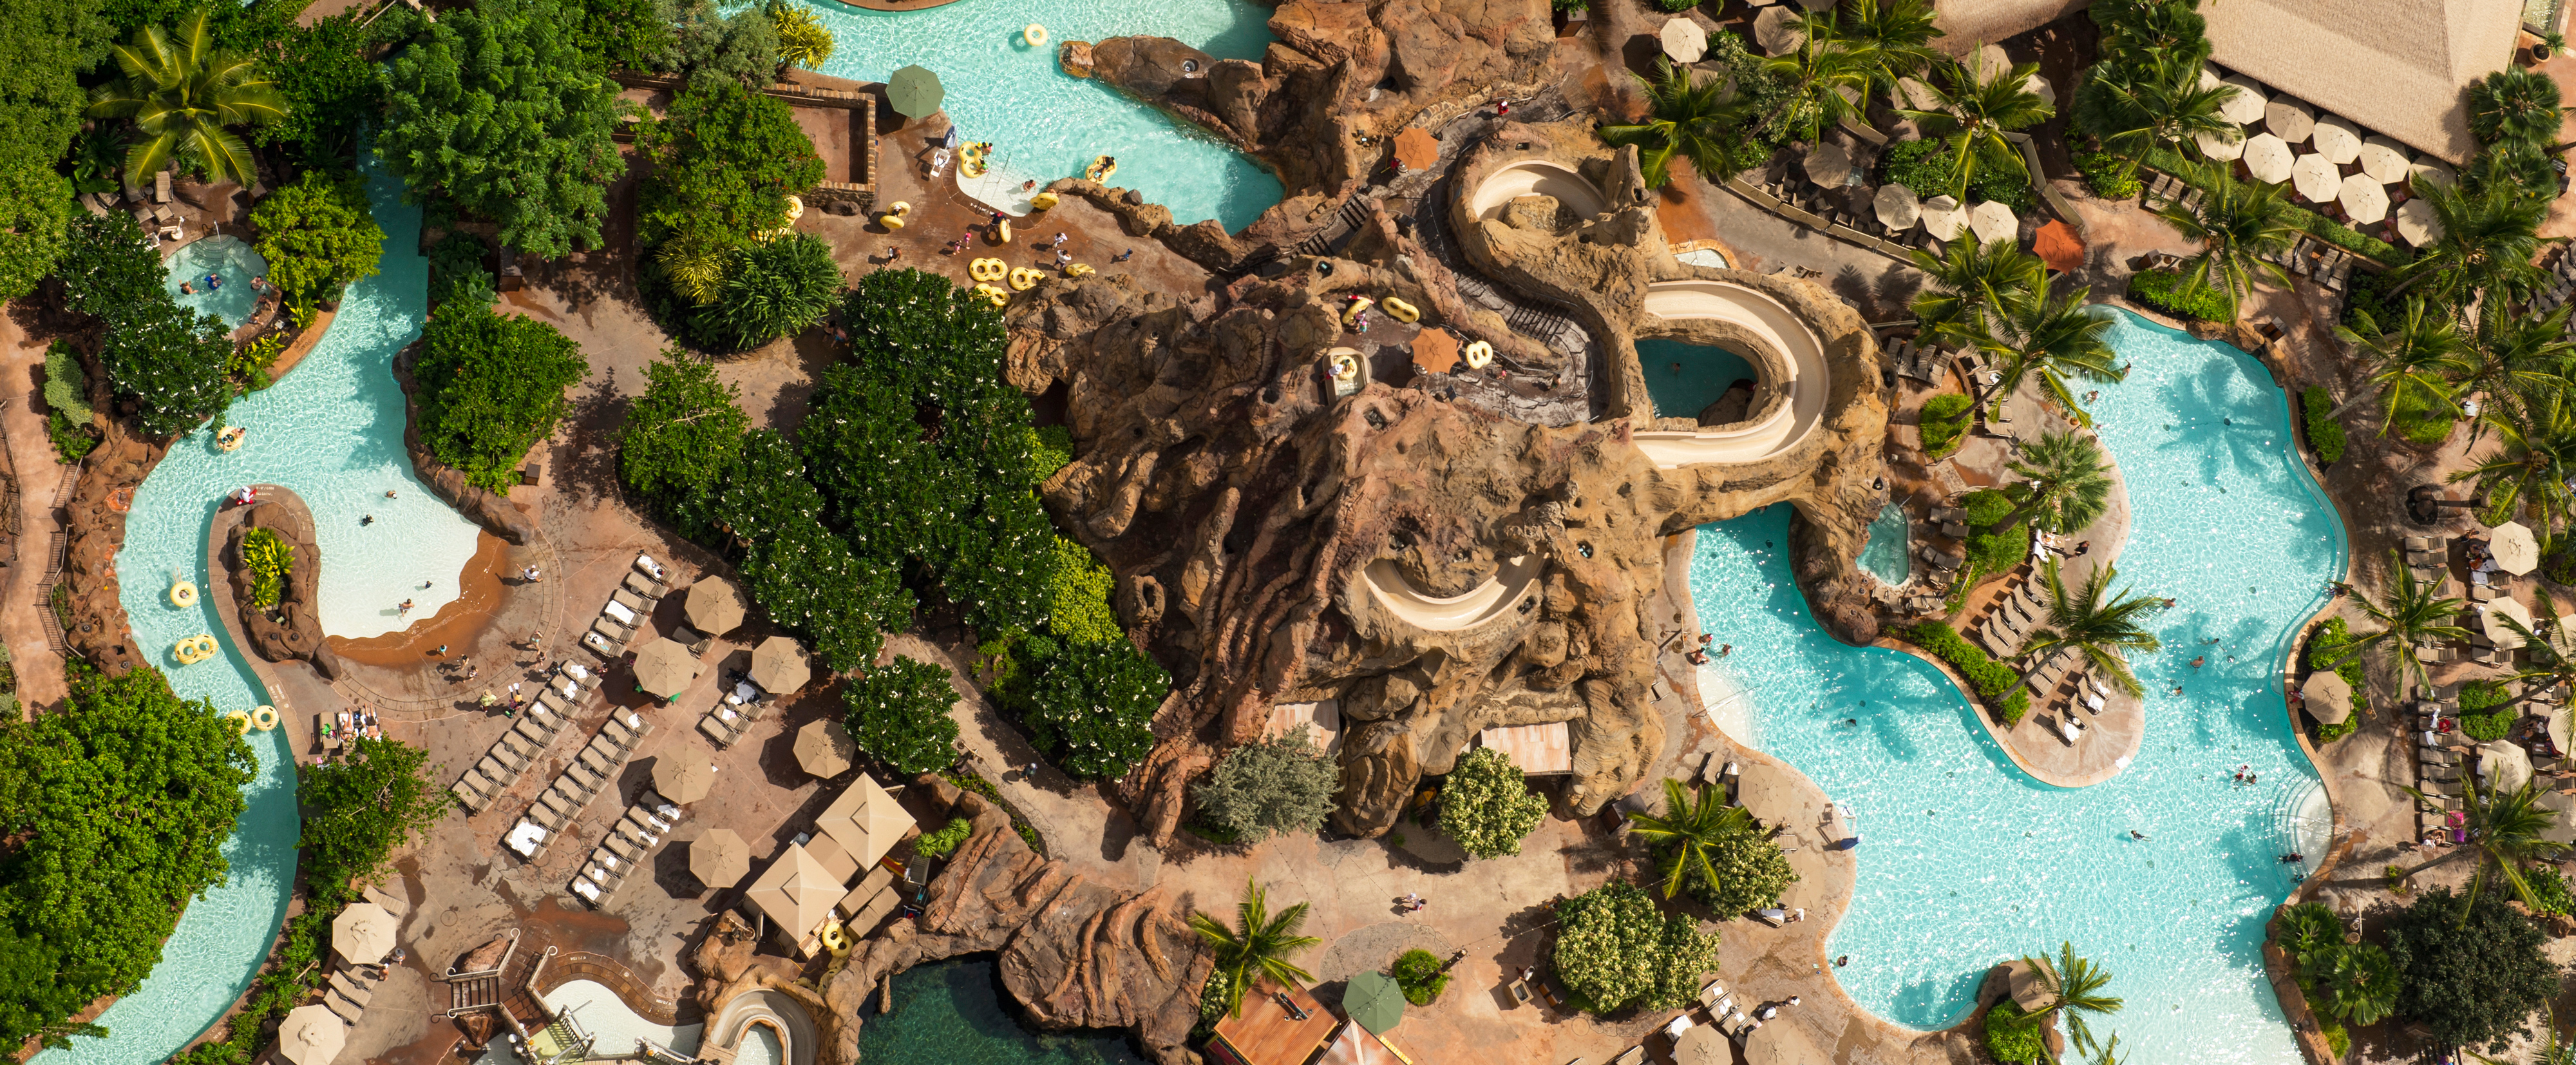 An aerial view of Waikolohe Stream, with a water slide, rock features, landscaping and sunbathing areas